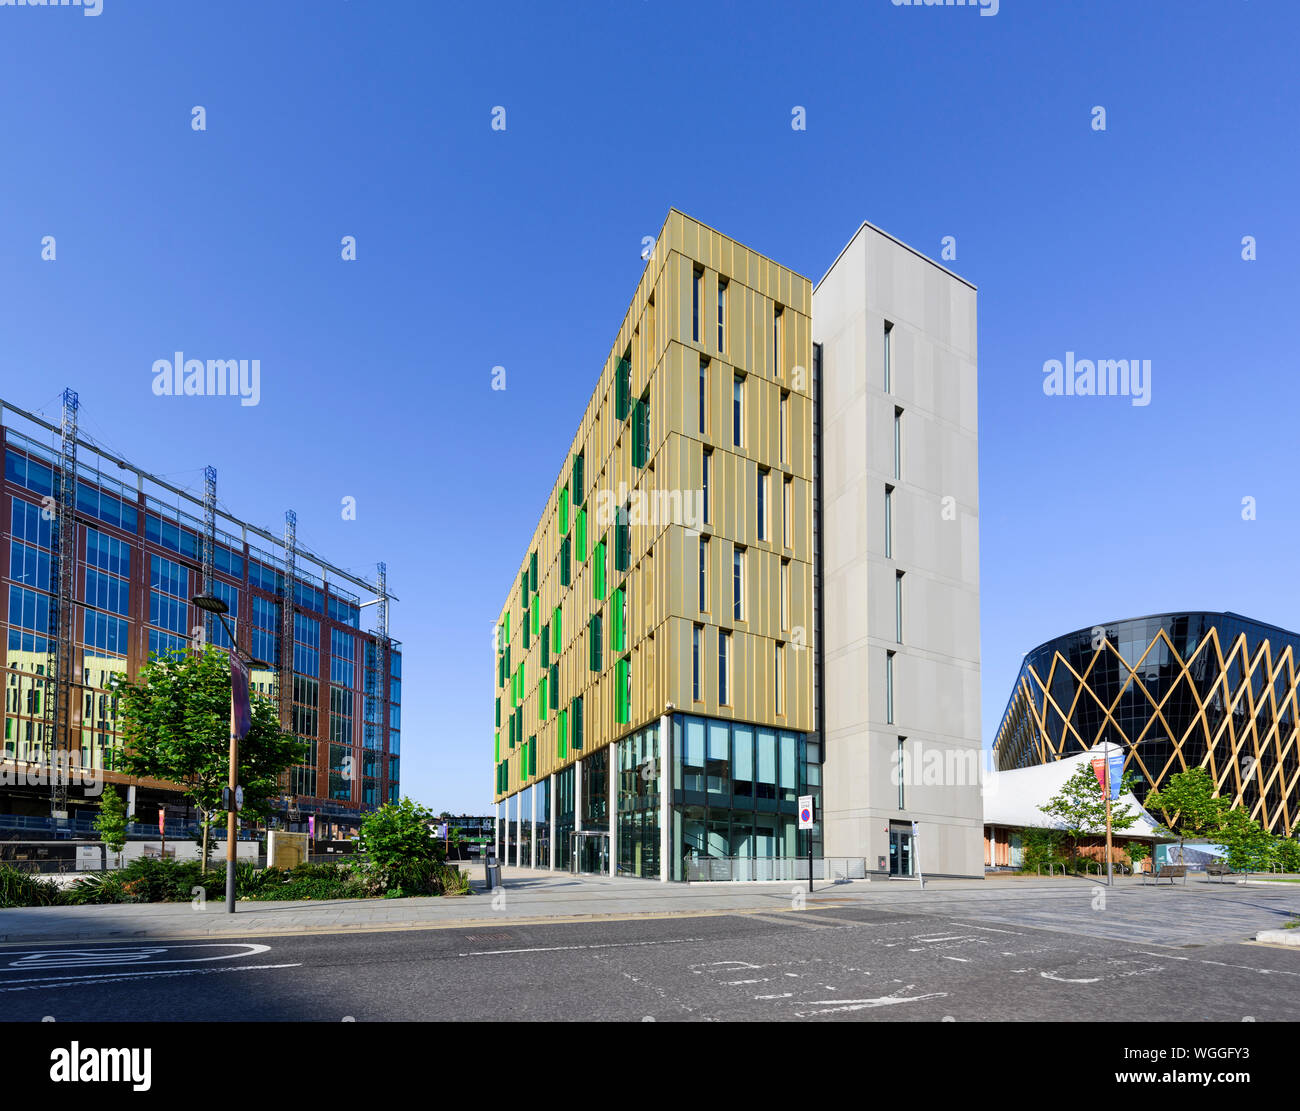 Modern architecture - The Core offfice & event building at Newcastle Helix the  Science City in Newcastle upon Tyne developed by Newcastle University Stock Photo